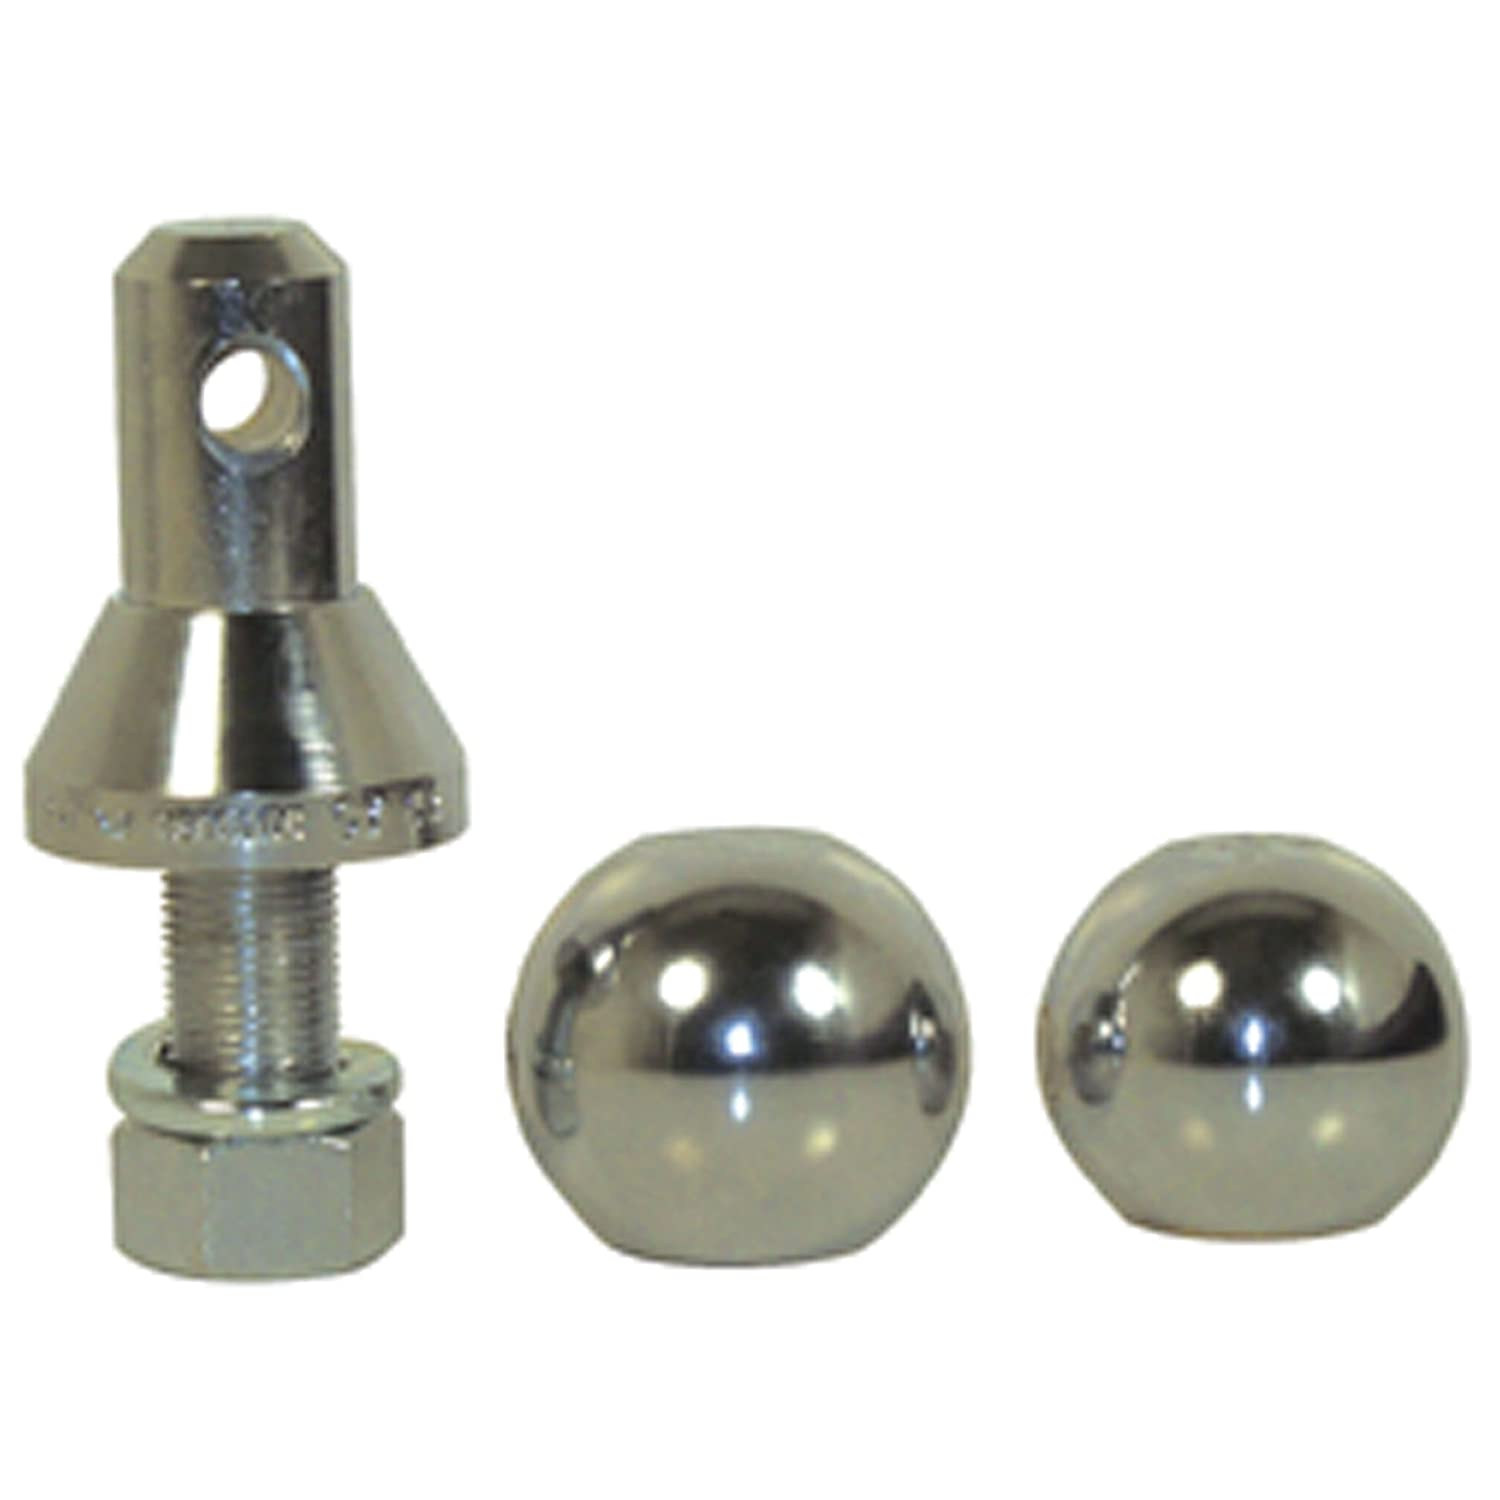 Convert-A-Ball 901B Nickel-Plated Shank with 2 Balls 1